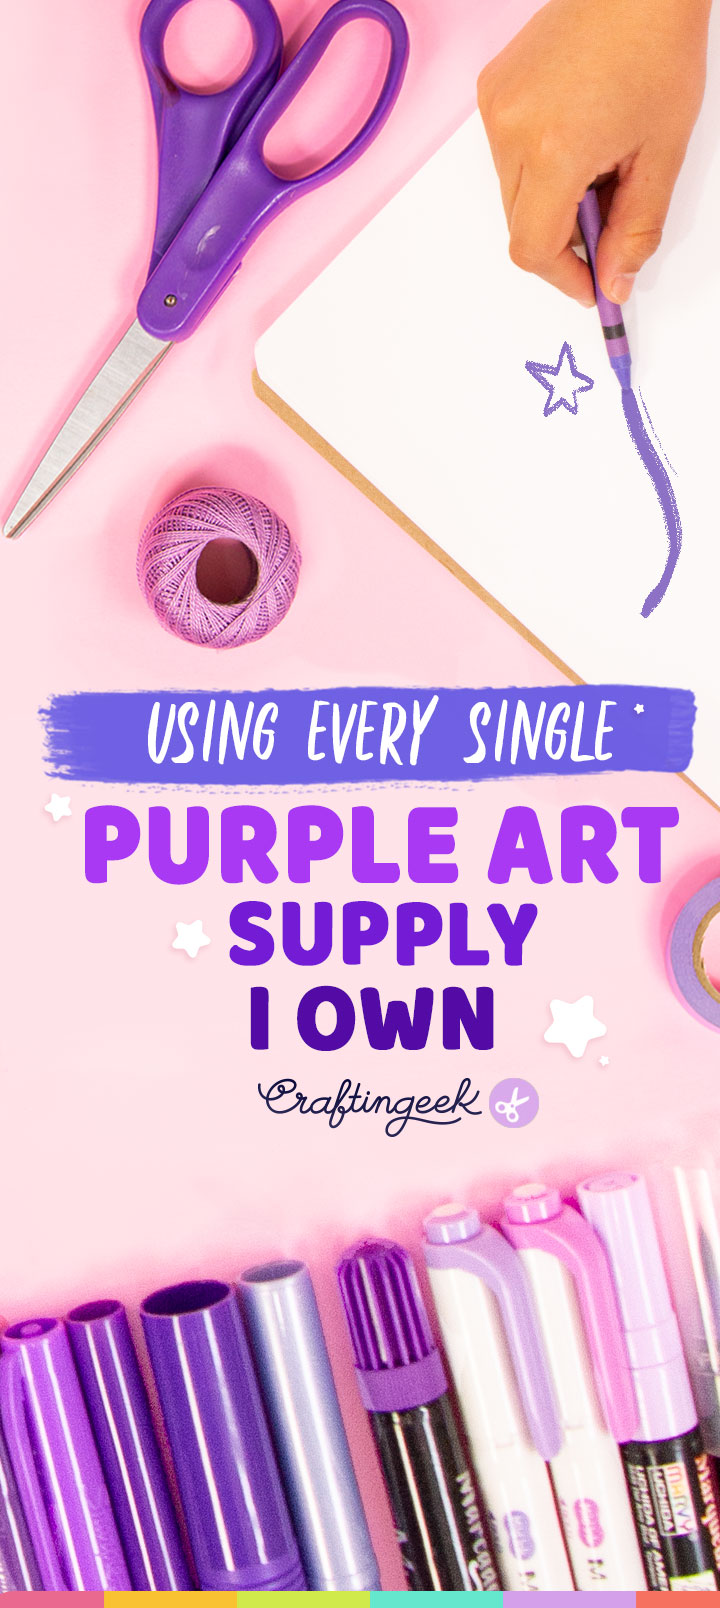 Use todos mis materiales morados y esto paso | Using every single purple art supply i own